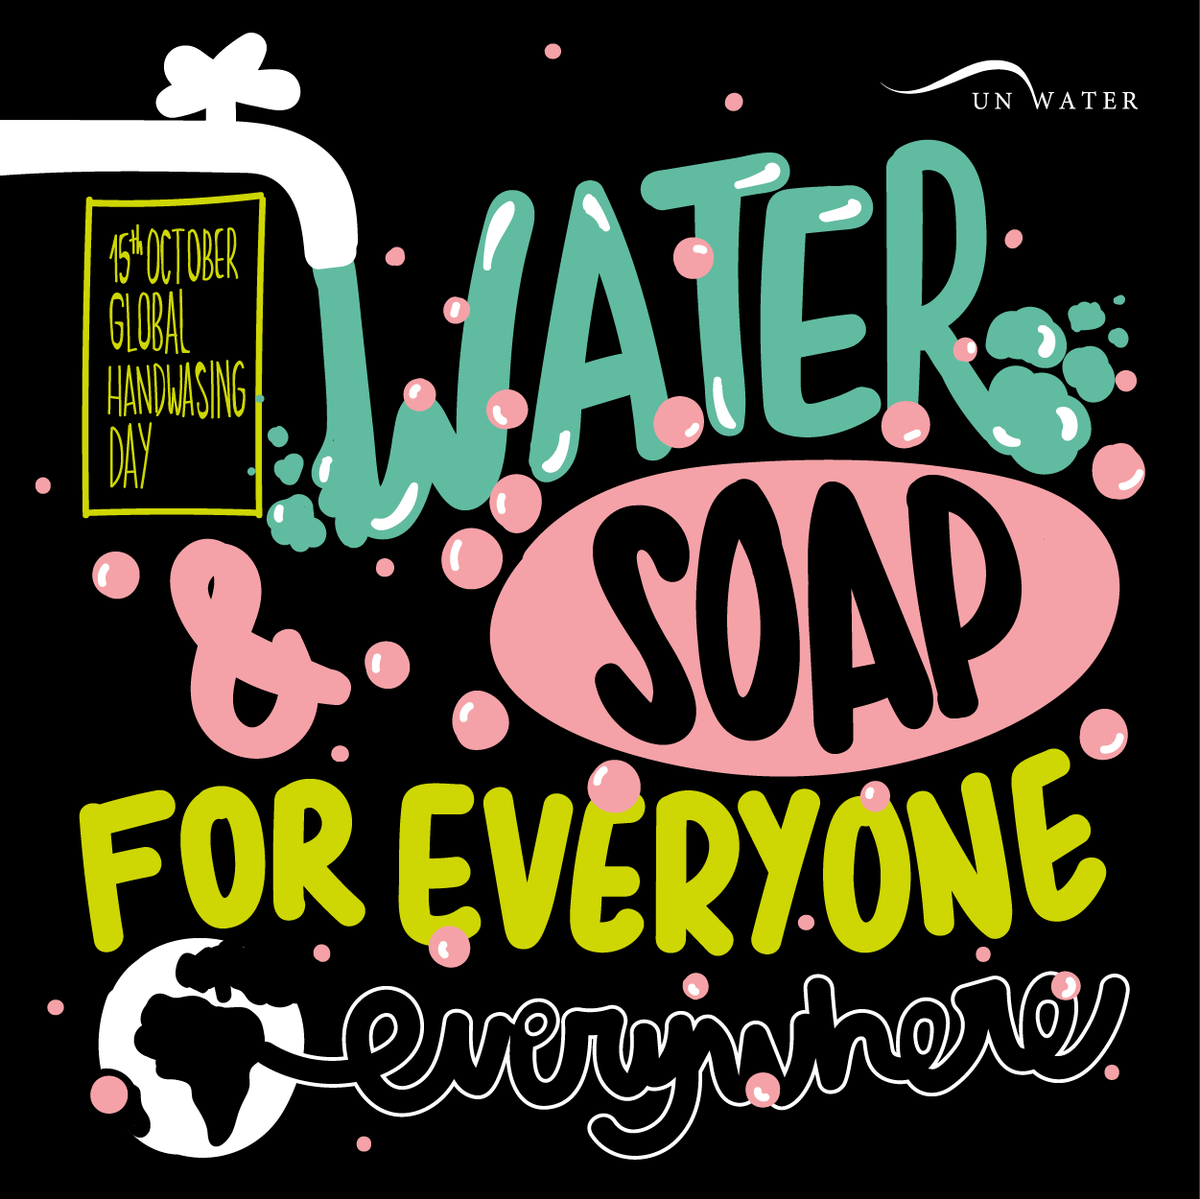 #CleanHandsforAll means that everyone, everywhere has access to soap and water to wash their hands.  Yet, only 1 out of 3 have basic handwashing facilities with soap and water at home. This #GlobalHandwashingDay, we must leave no one behind. https://buff.ly/2Vmtj2d